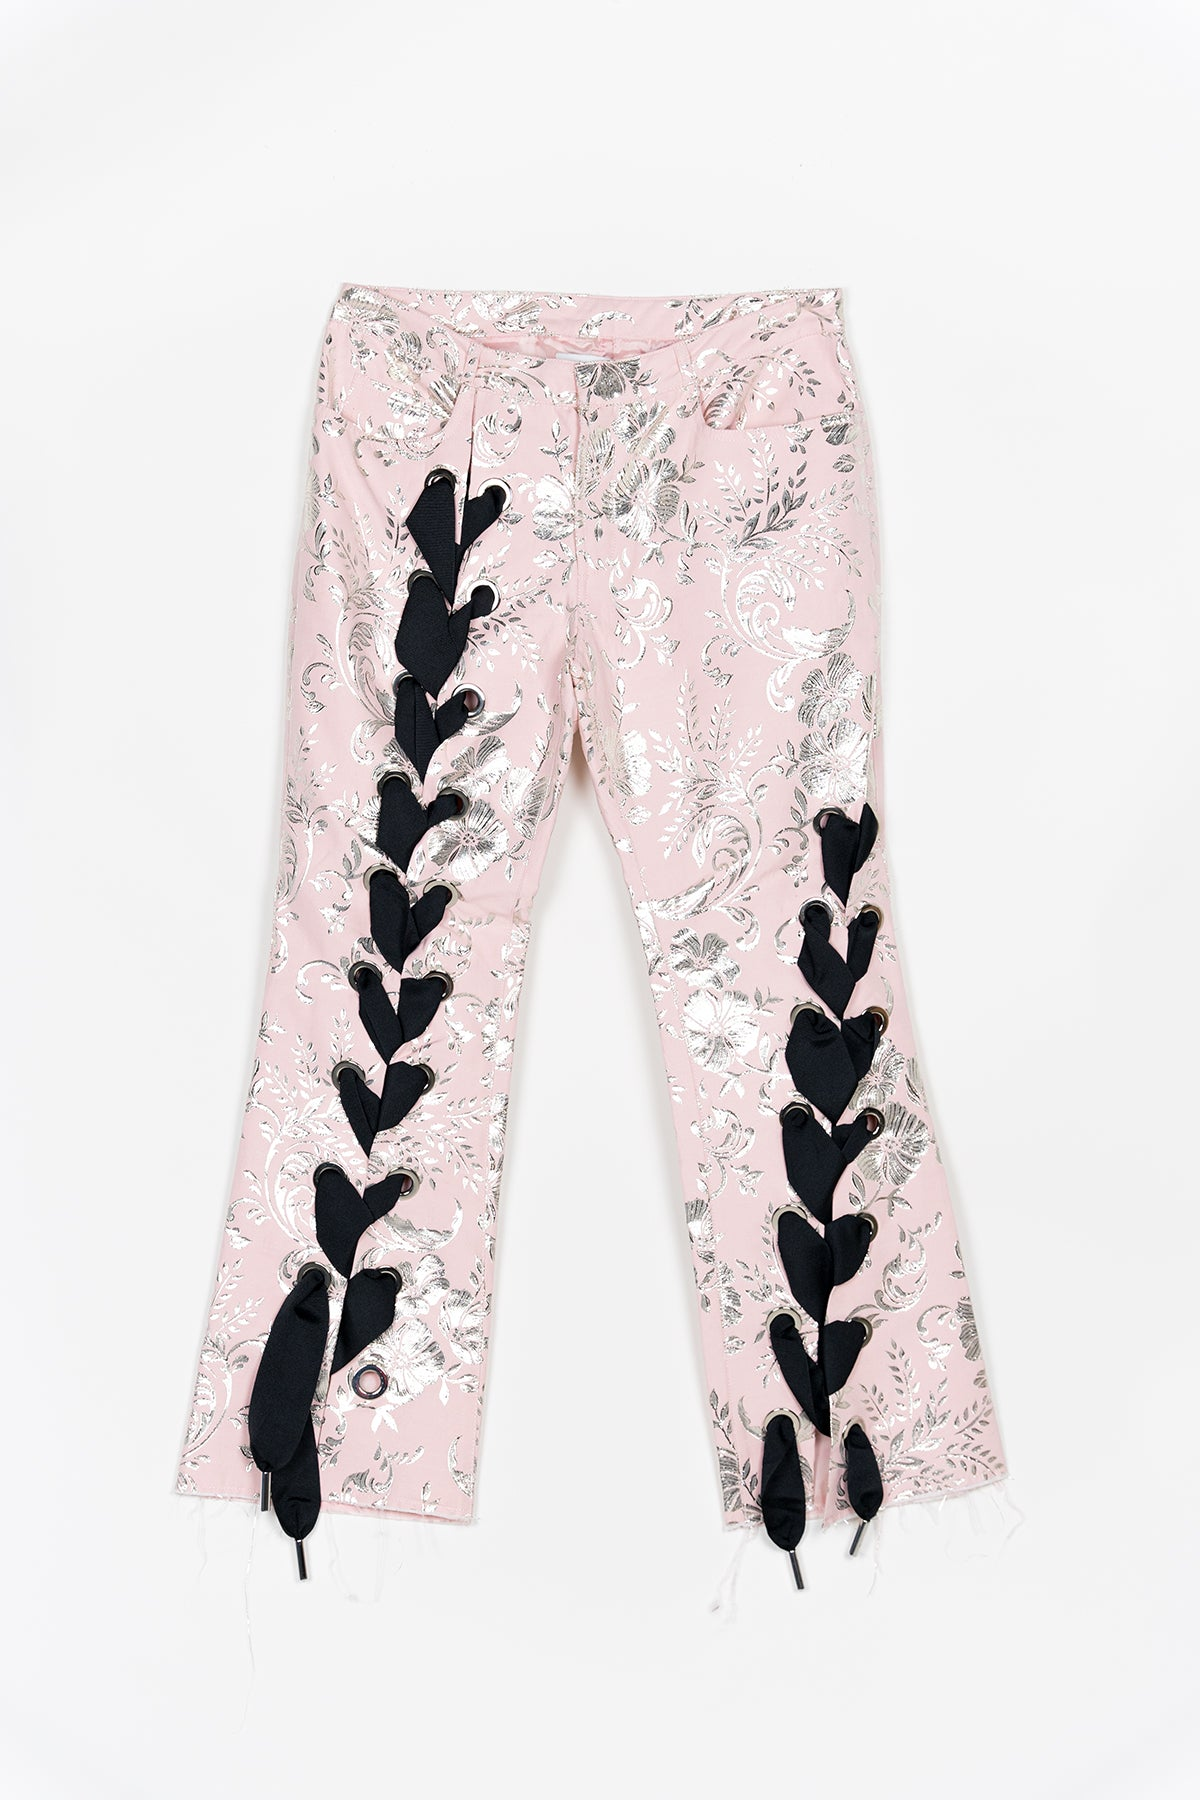 PINK AND SILVER CAPRI TROUSERS WITH CORSETING LACE DETAIL